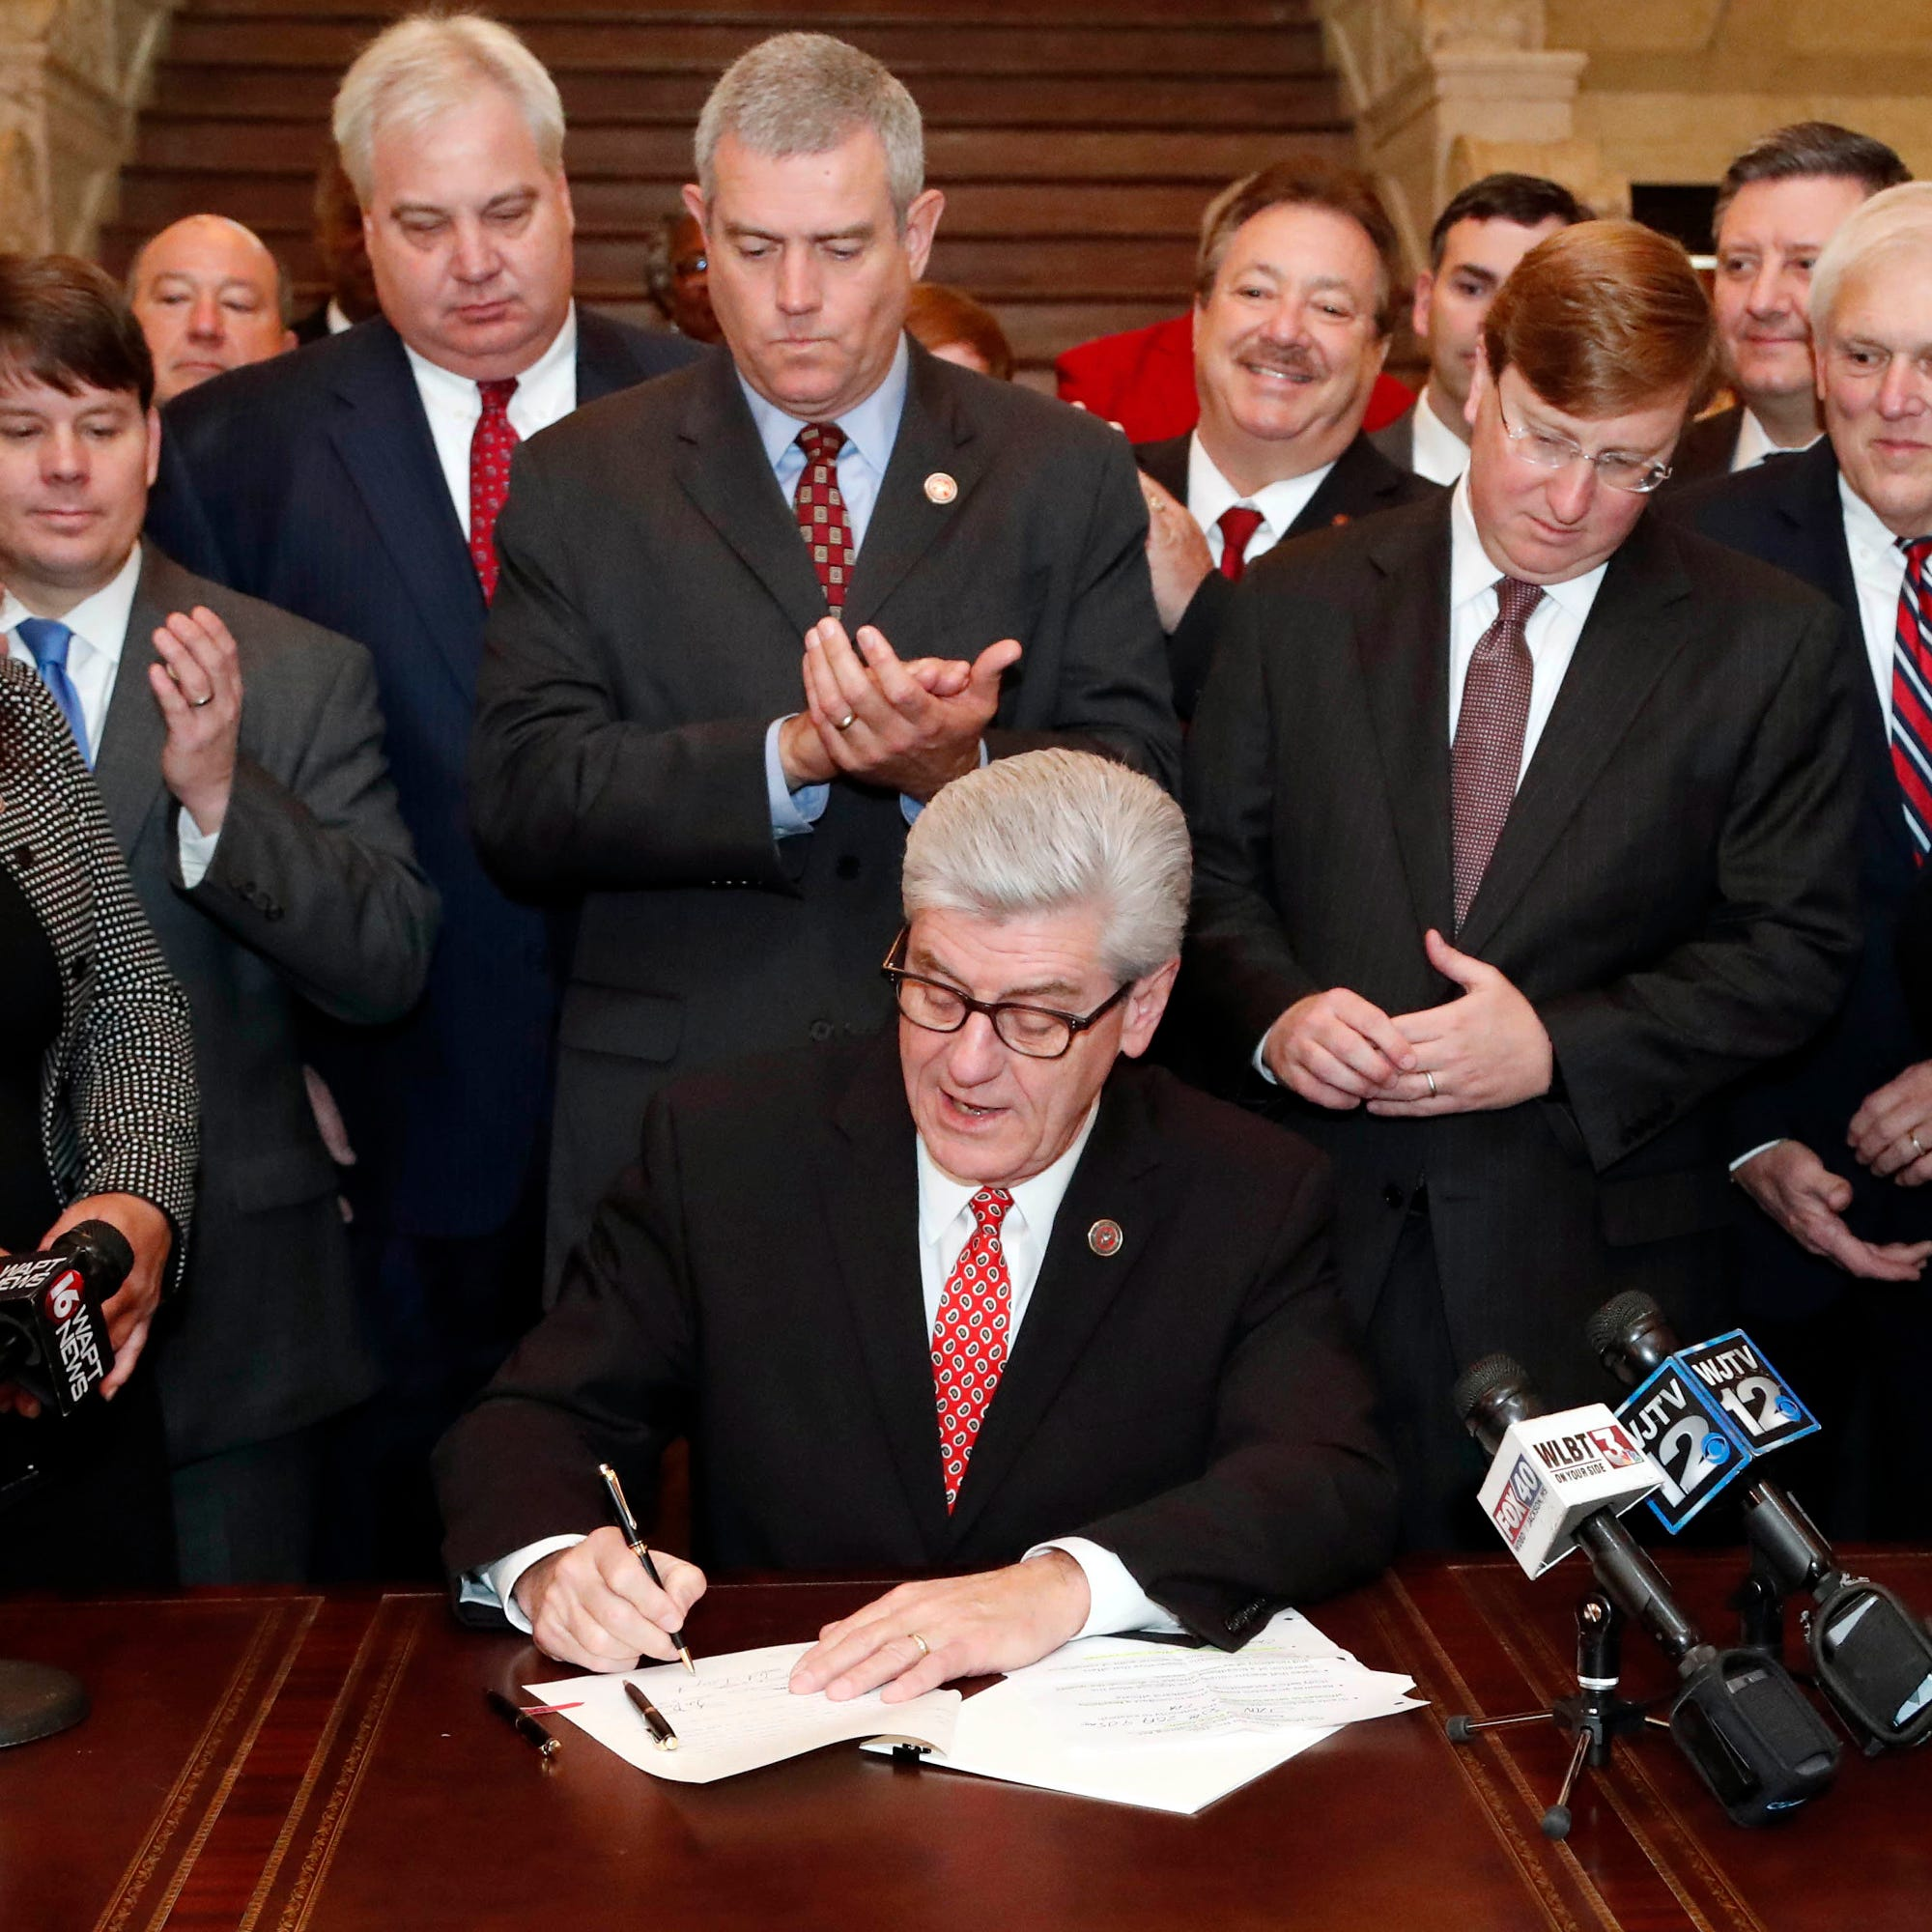 Gov. Phil Bryant, seated center, signs the Mississippi Broadband Enabling Act, as lawmakers and electric cooperatives officials applaud at the Capitol in Jackson, Miss., Wednesday Jan. 30, 2019. The measure allows Mississippi's 25 electric cooperatives to form subsidiaries to offer broadband internet service, removing a ban on the member-owned utilities getting into other businesses.